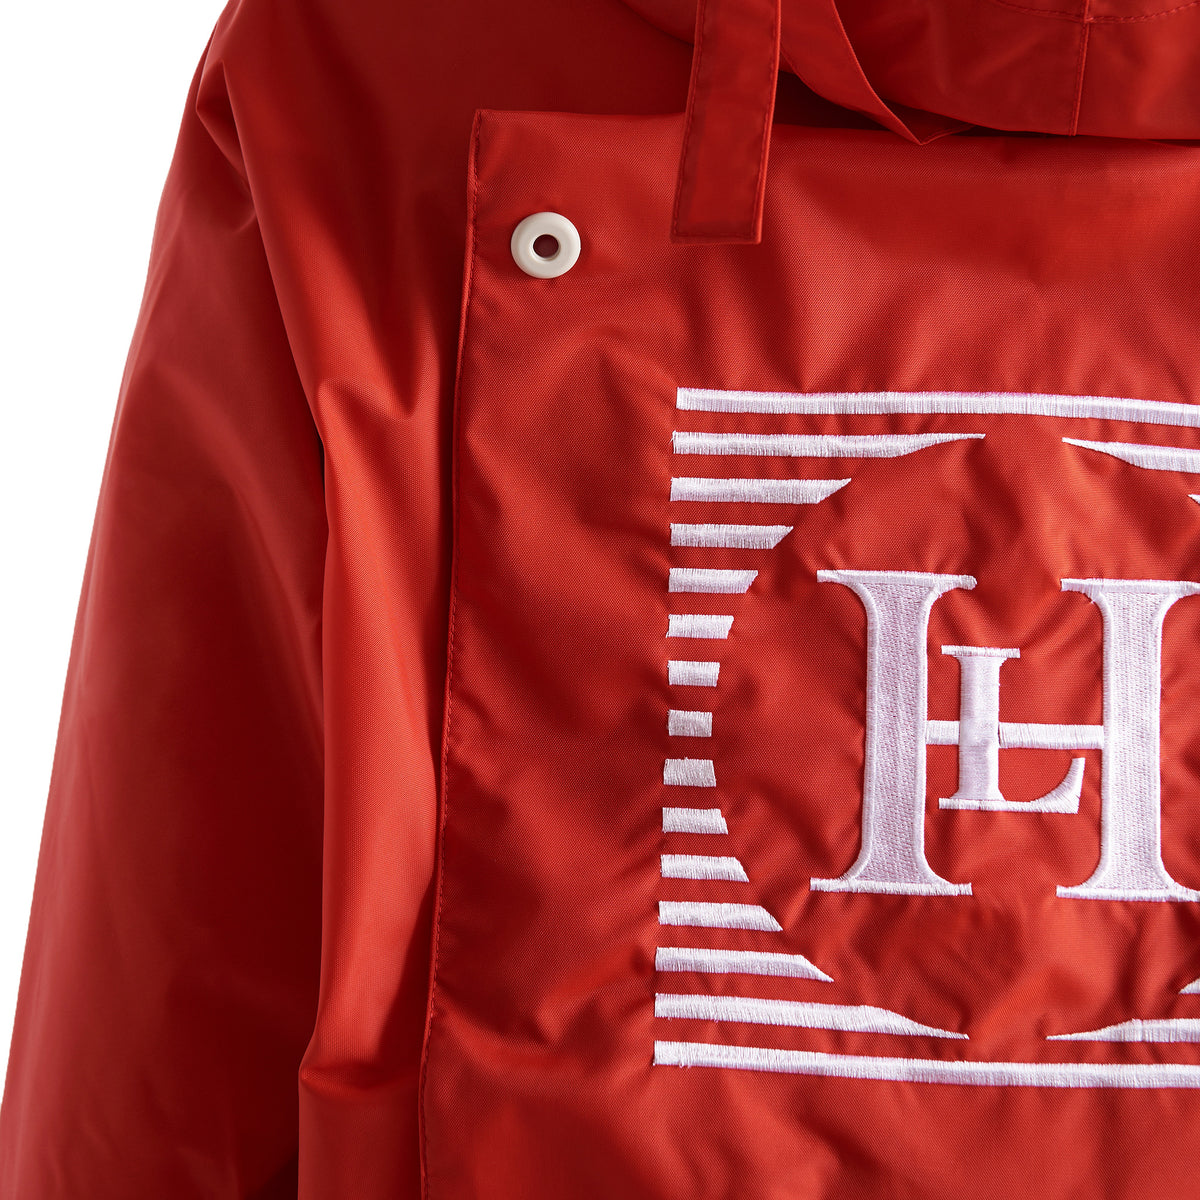 Henri Lloyd X Nigel Cabourn Waterproof Spray Jacket Old Red Badge